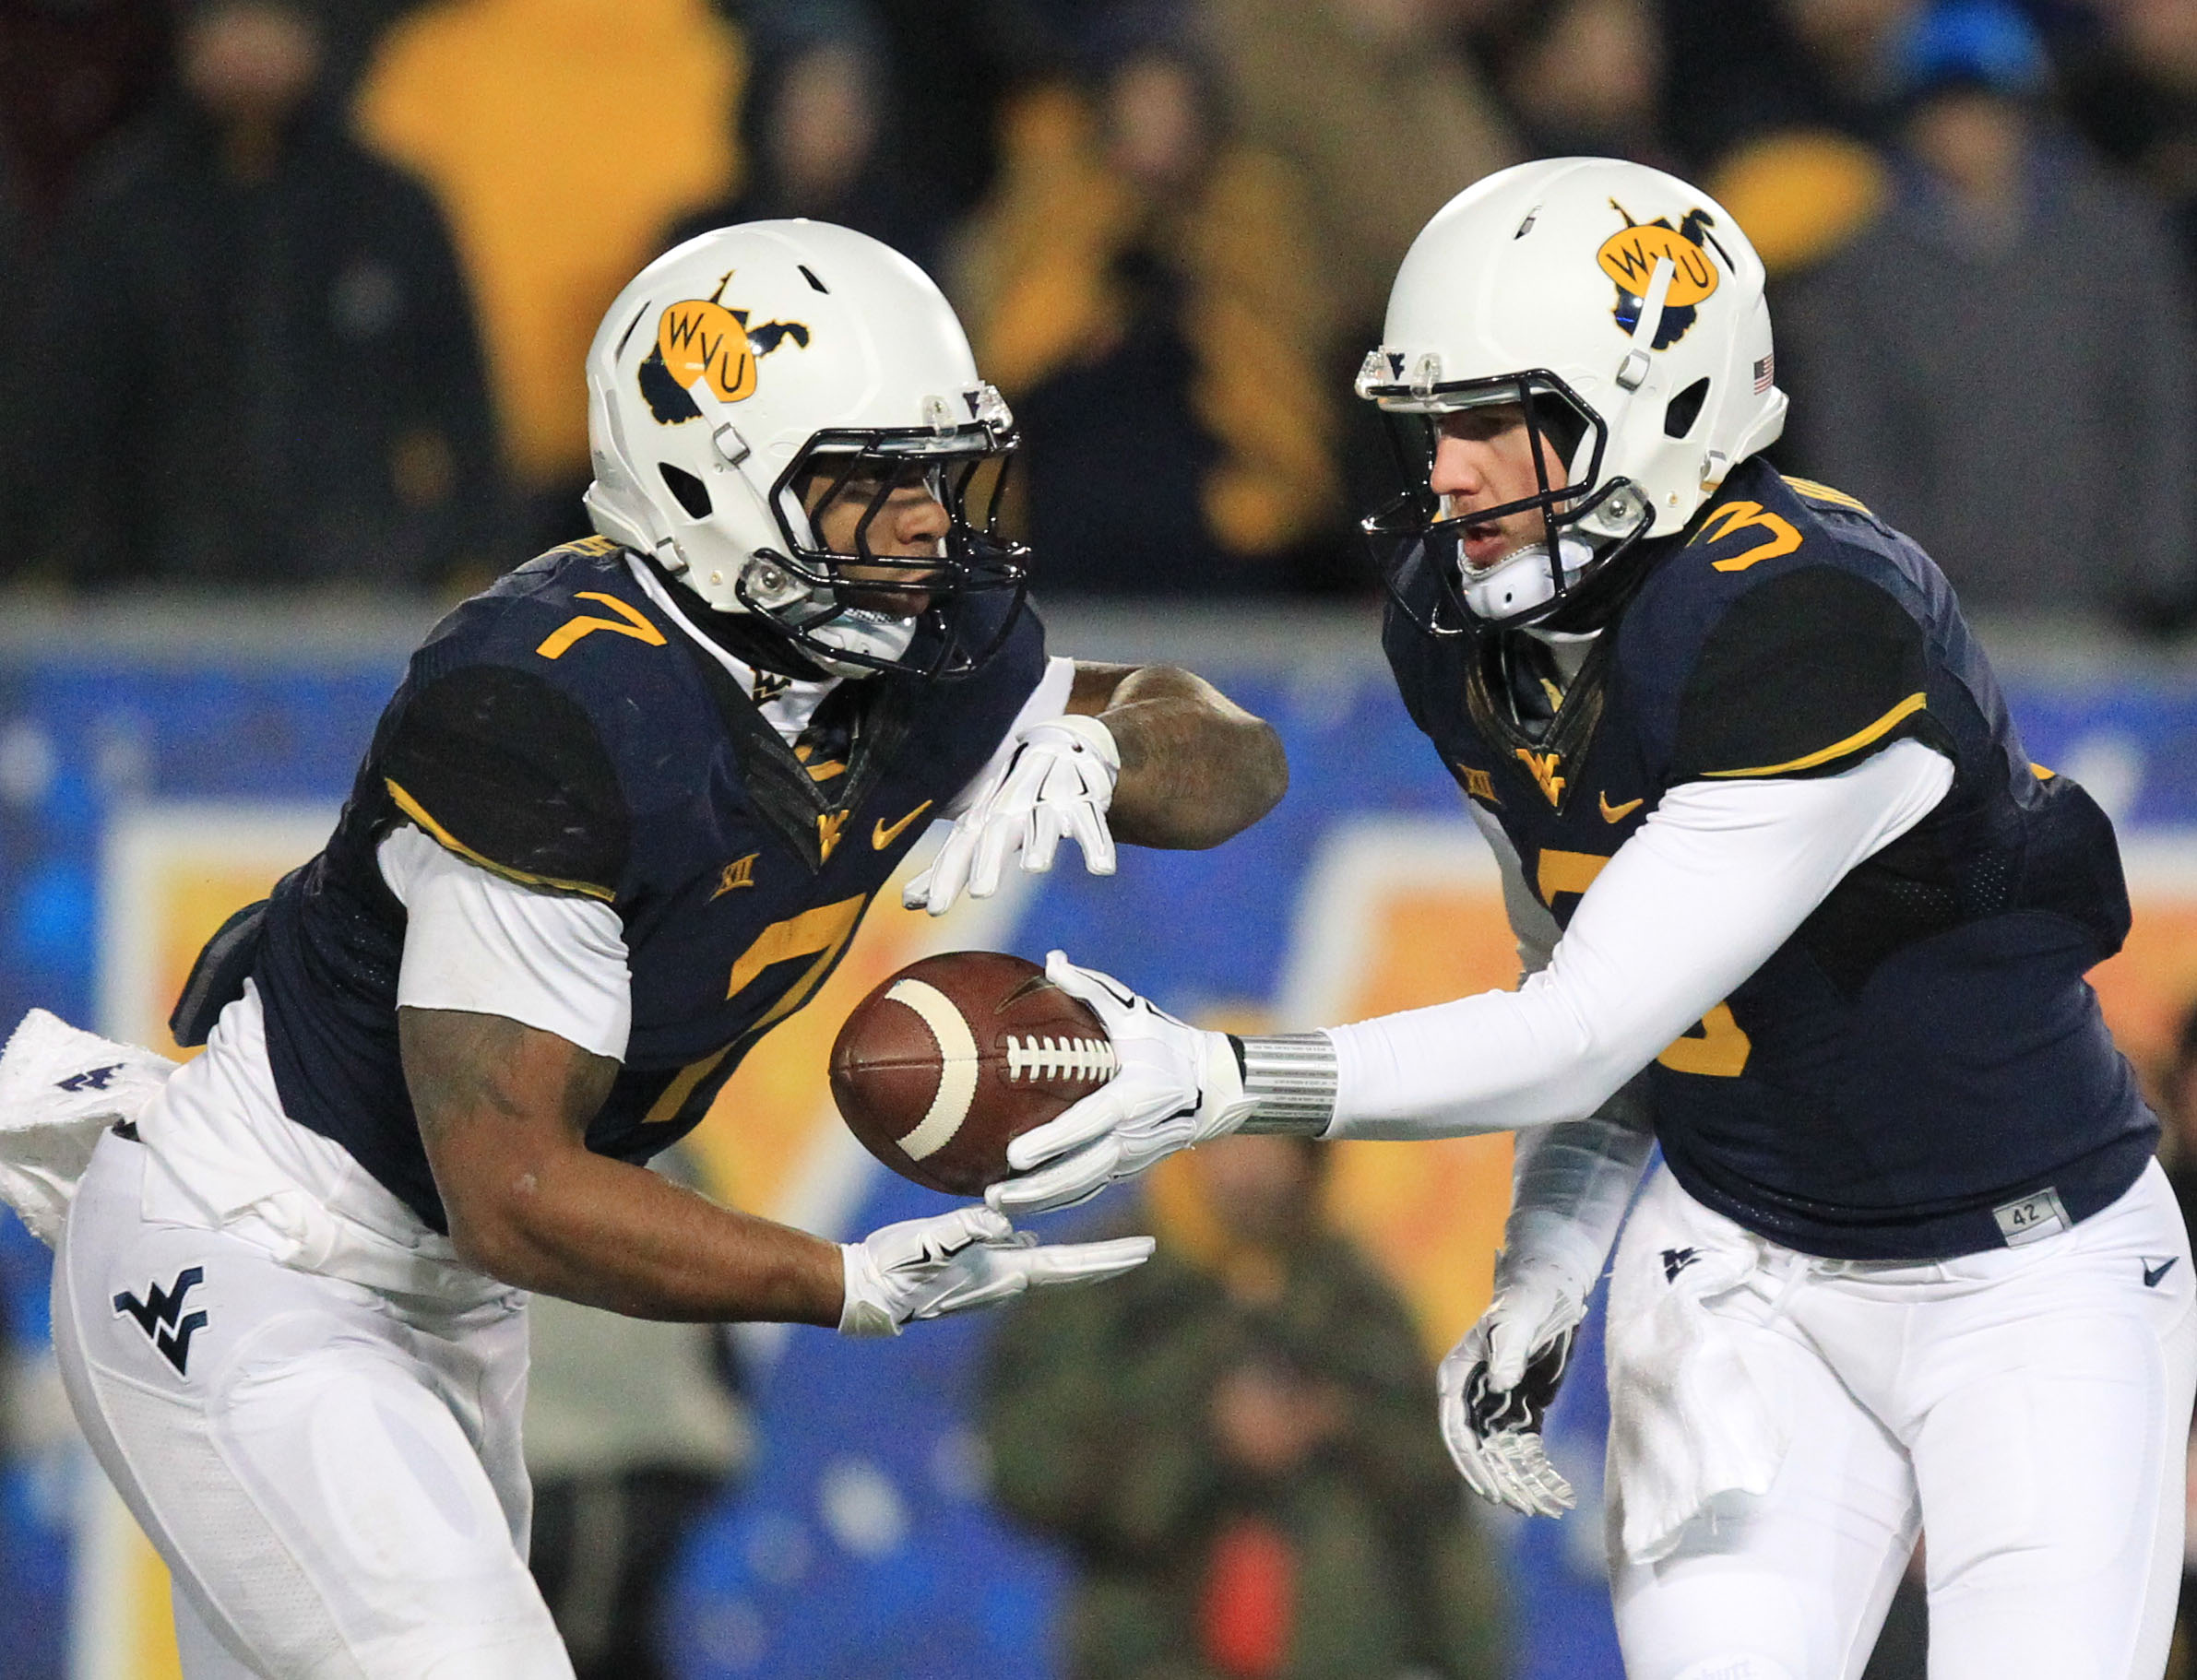 073e8d512 The Mountaineers also have one of the best throwback unis in college  football ...